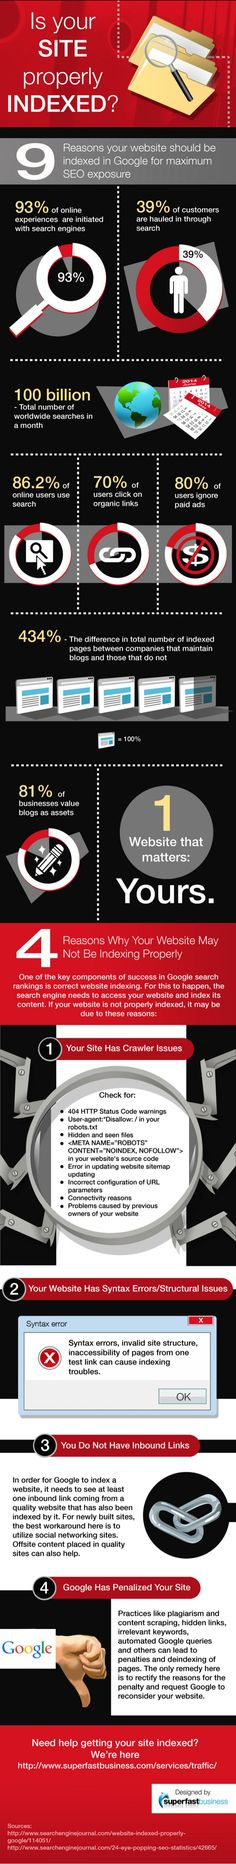 Is you website properly indexed to get the most out of Google #Business #entrepreneurs #Web #Marketing #Content